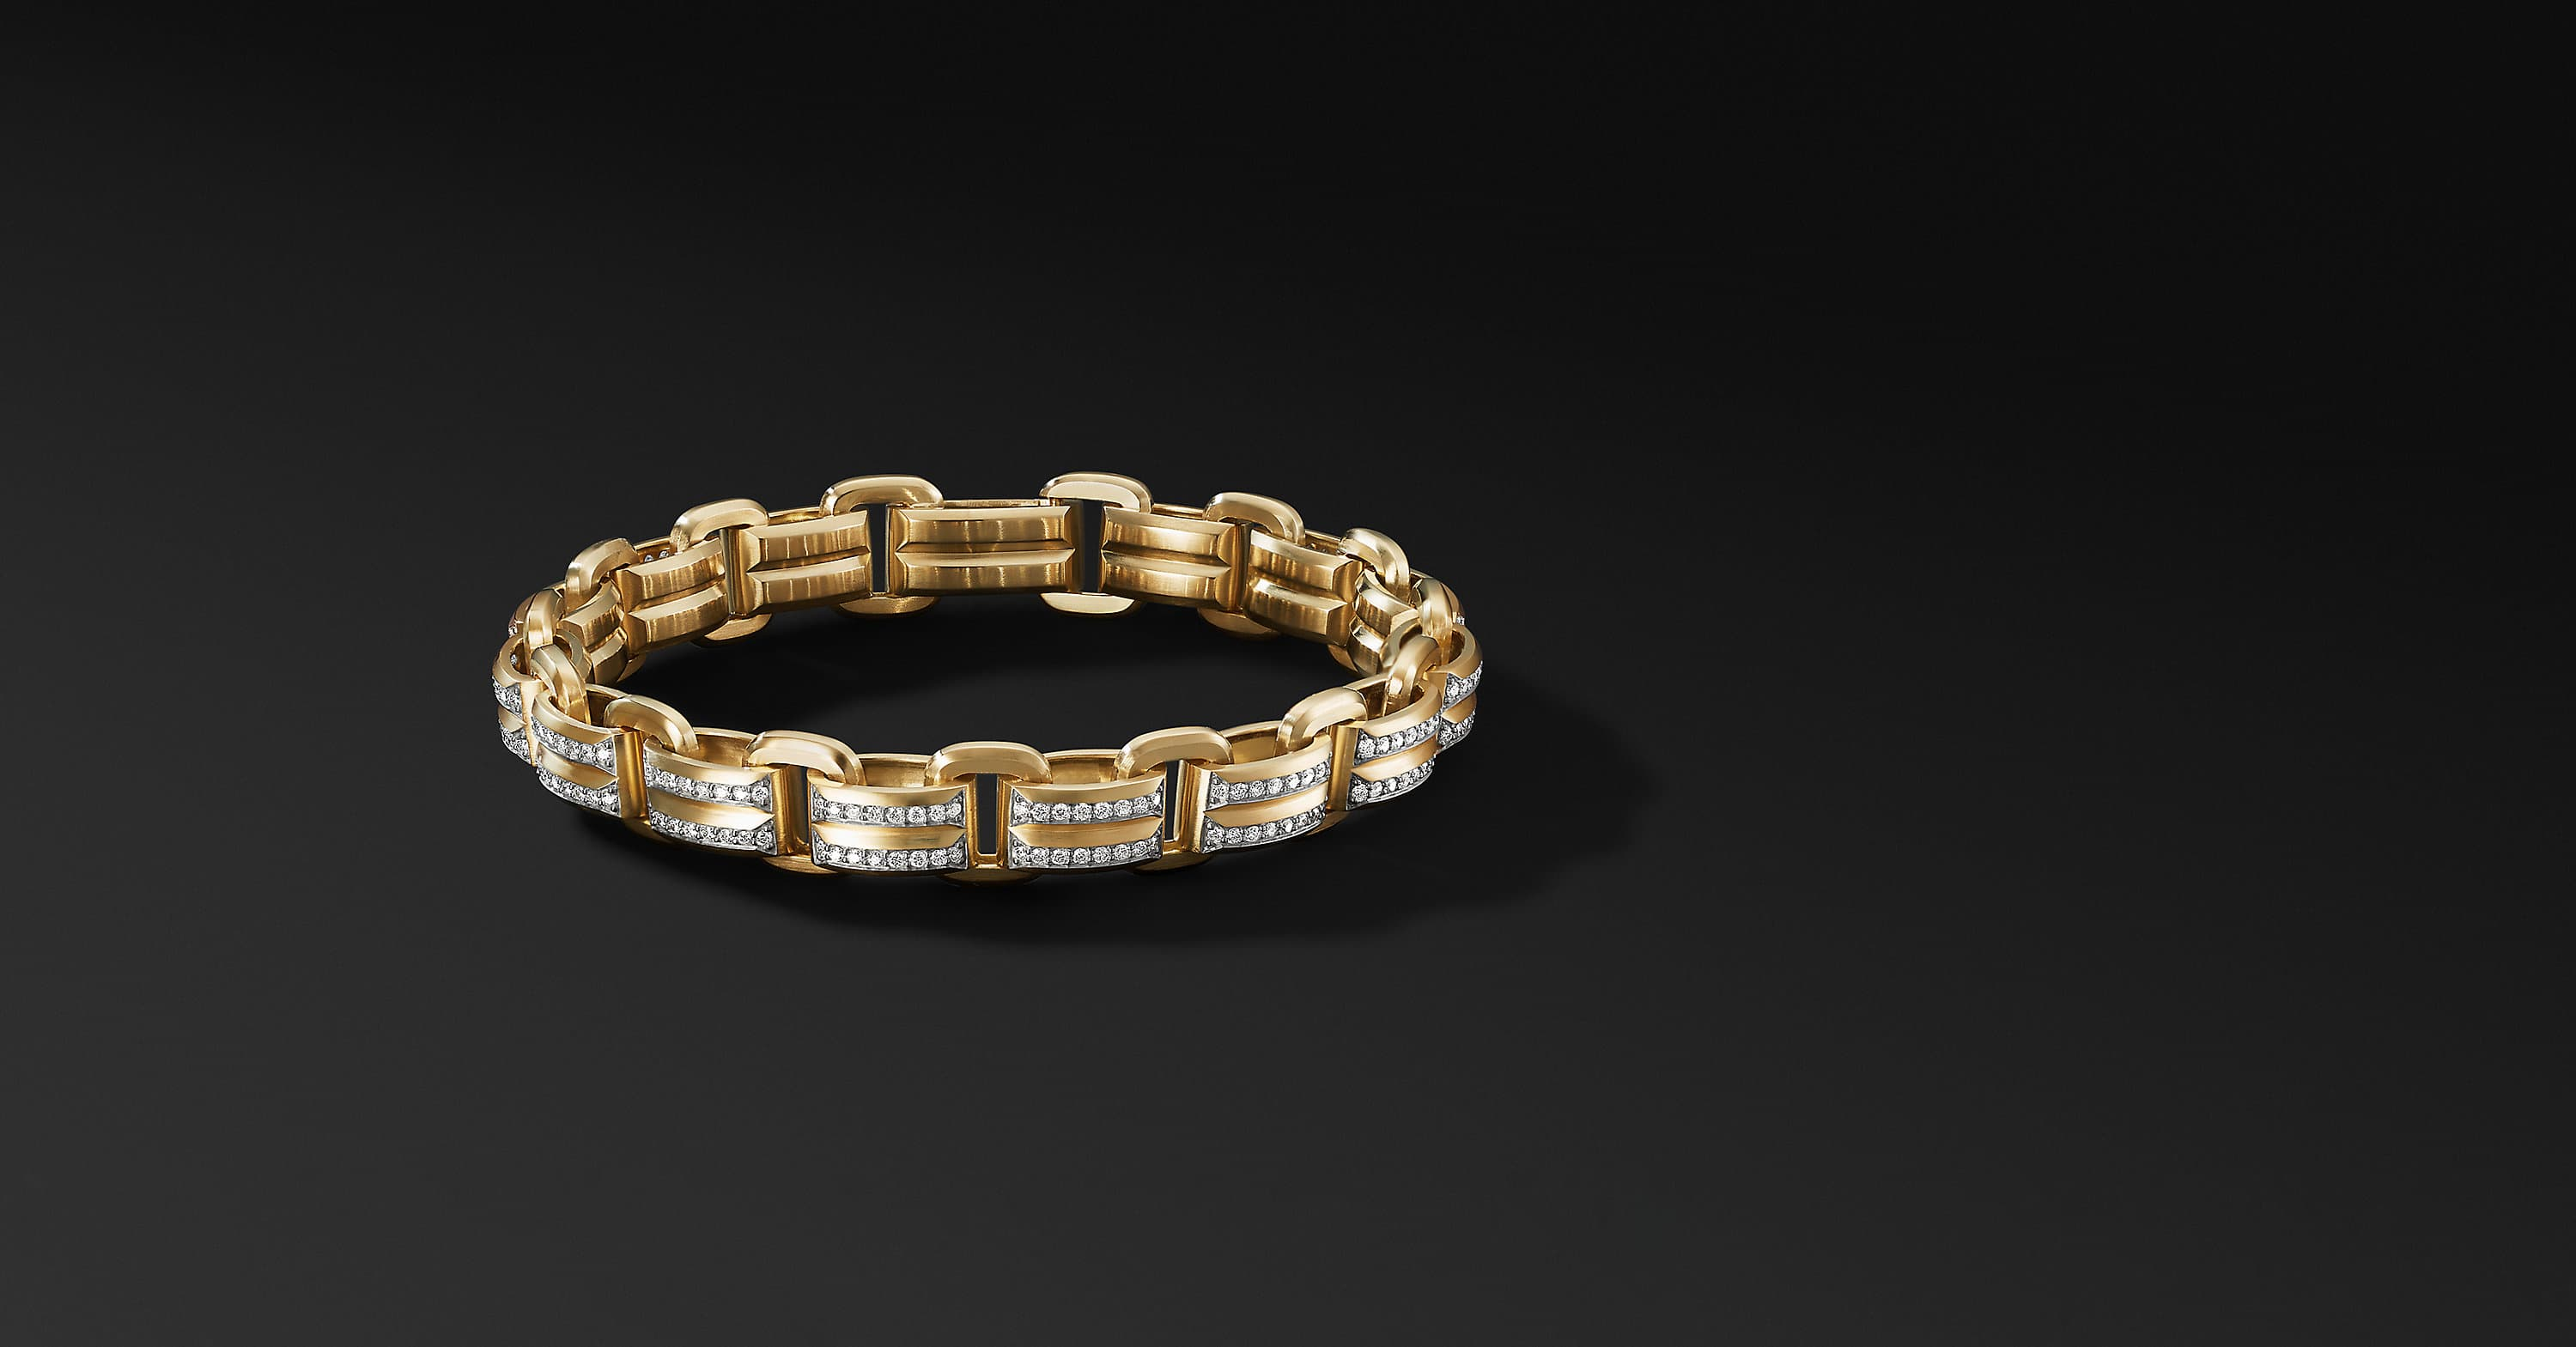 Beveled Link Bracelet in 18K Yellow Gold, 7.5mm